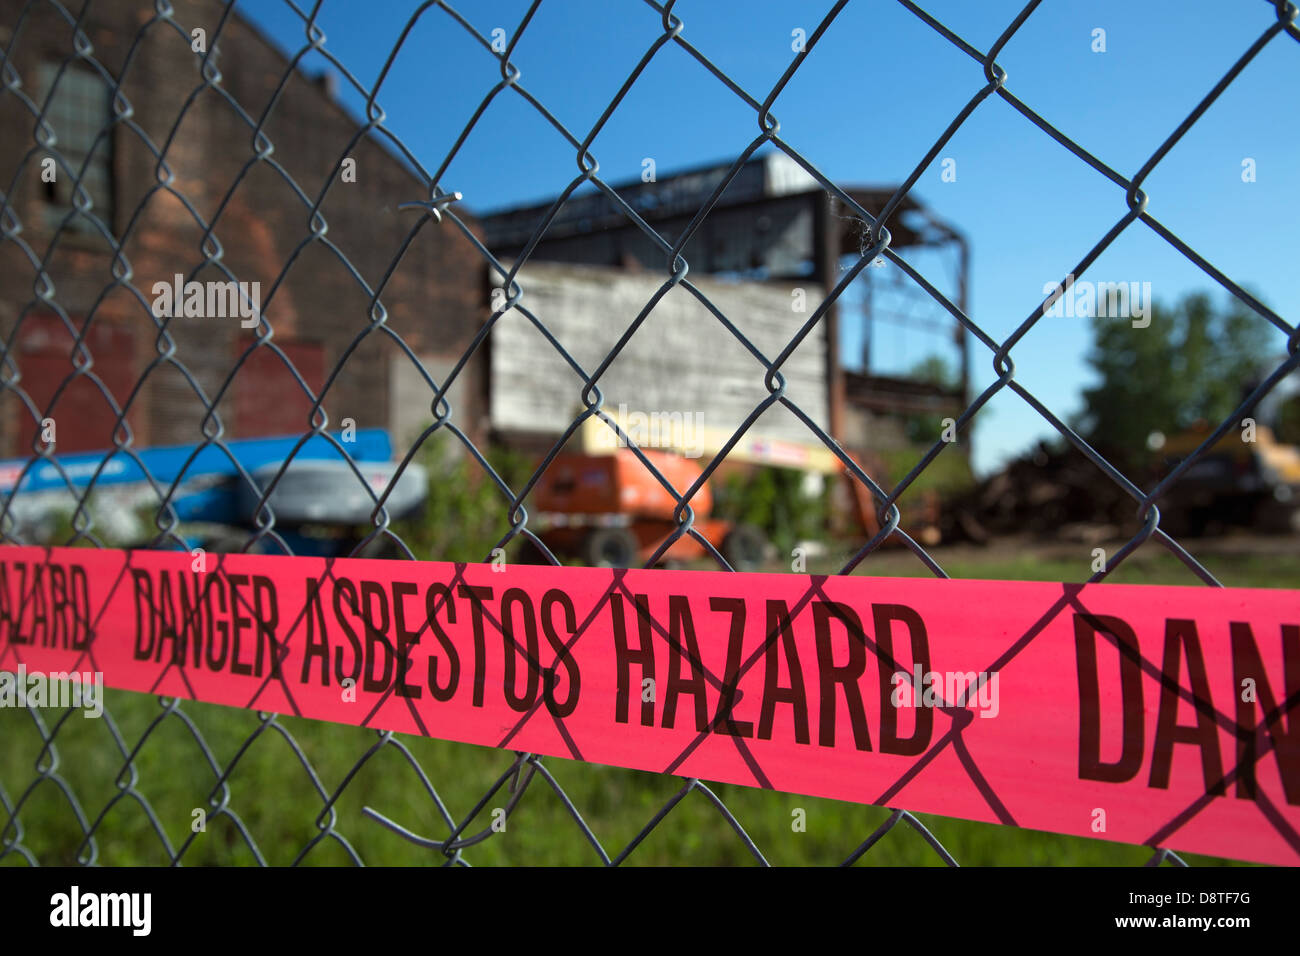 Asbestos Hazard at Old Factory - Stock Image